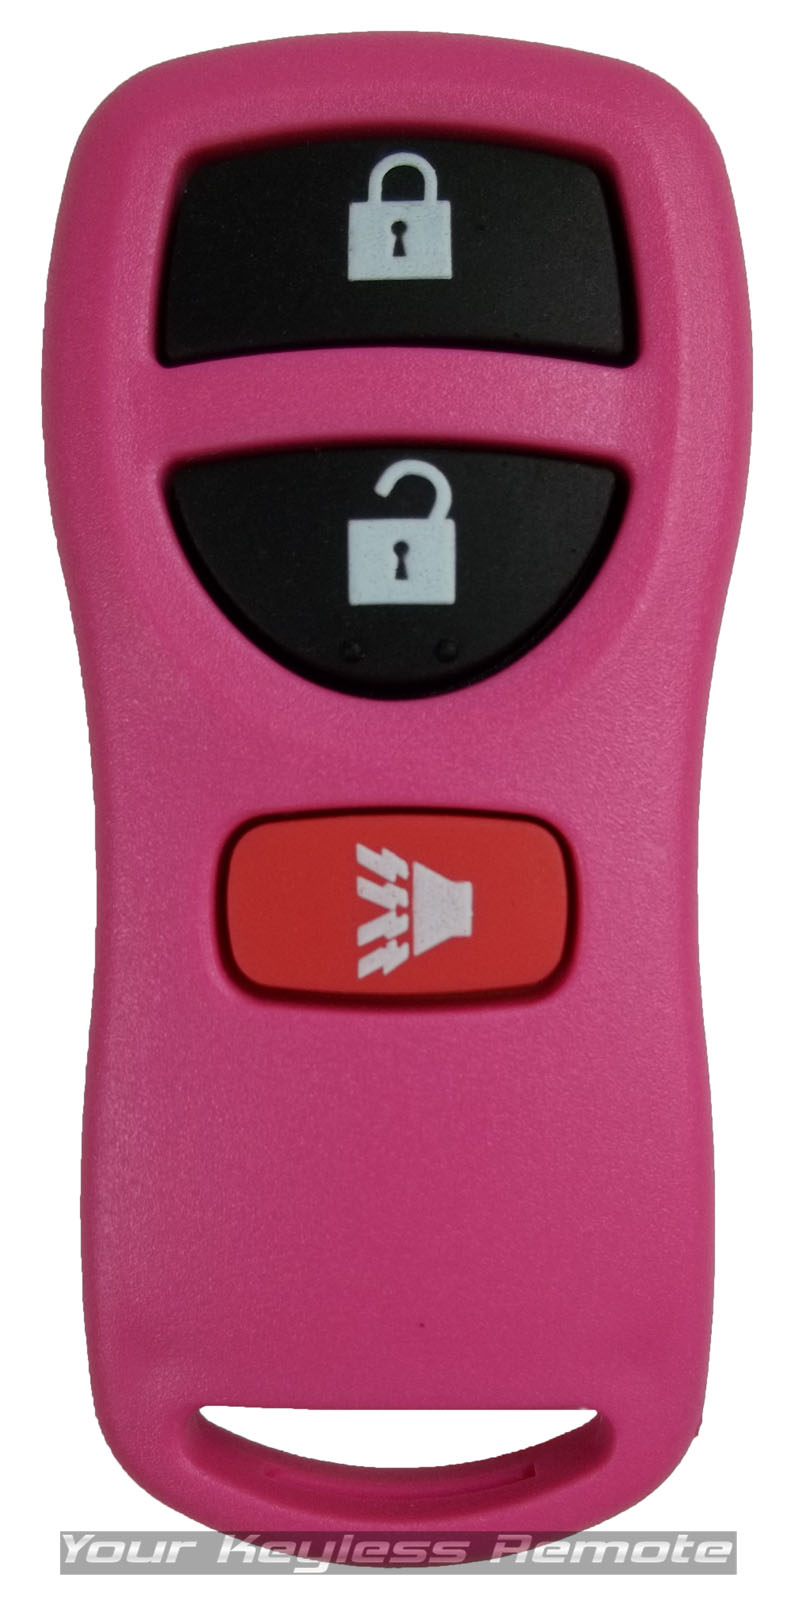 New Pink Replacement Remote Key Keyless Entry Fob Transmitter Clicker Alarm For Nissan Infiniti Kbrastu15 Fits Product Image1